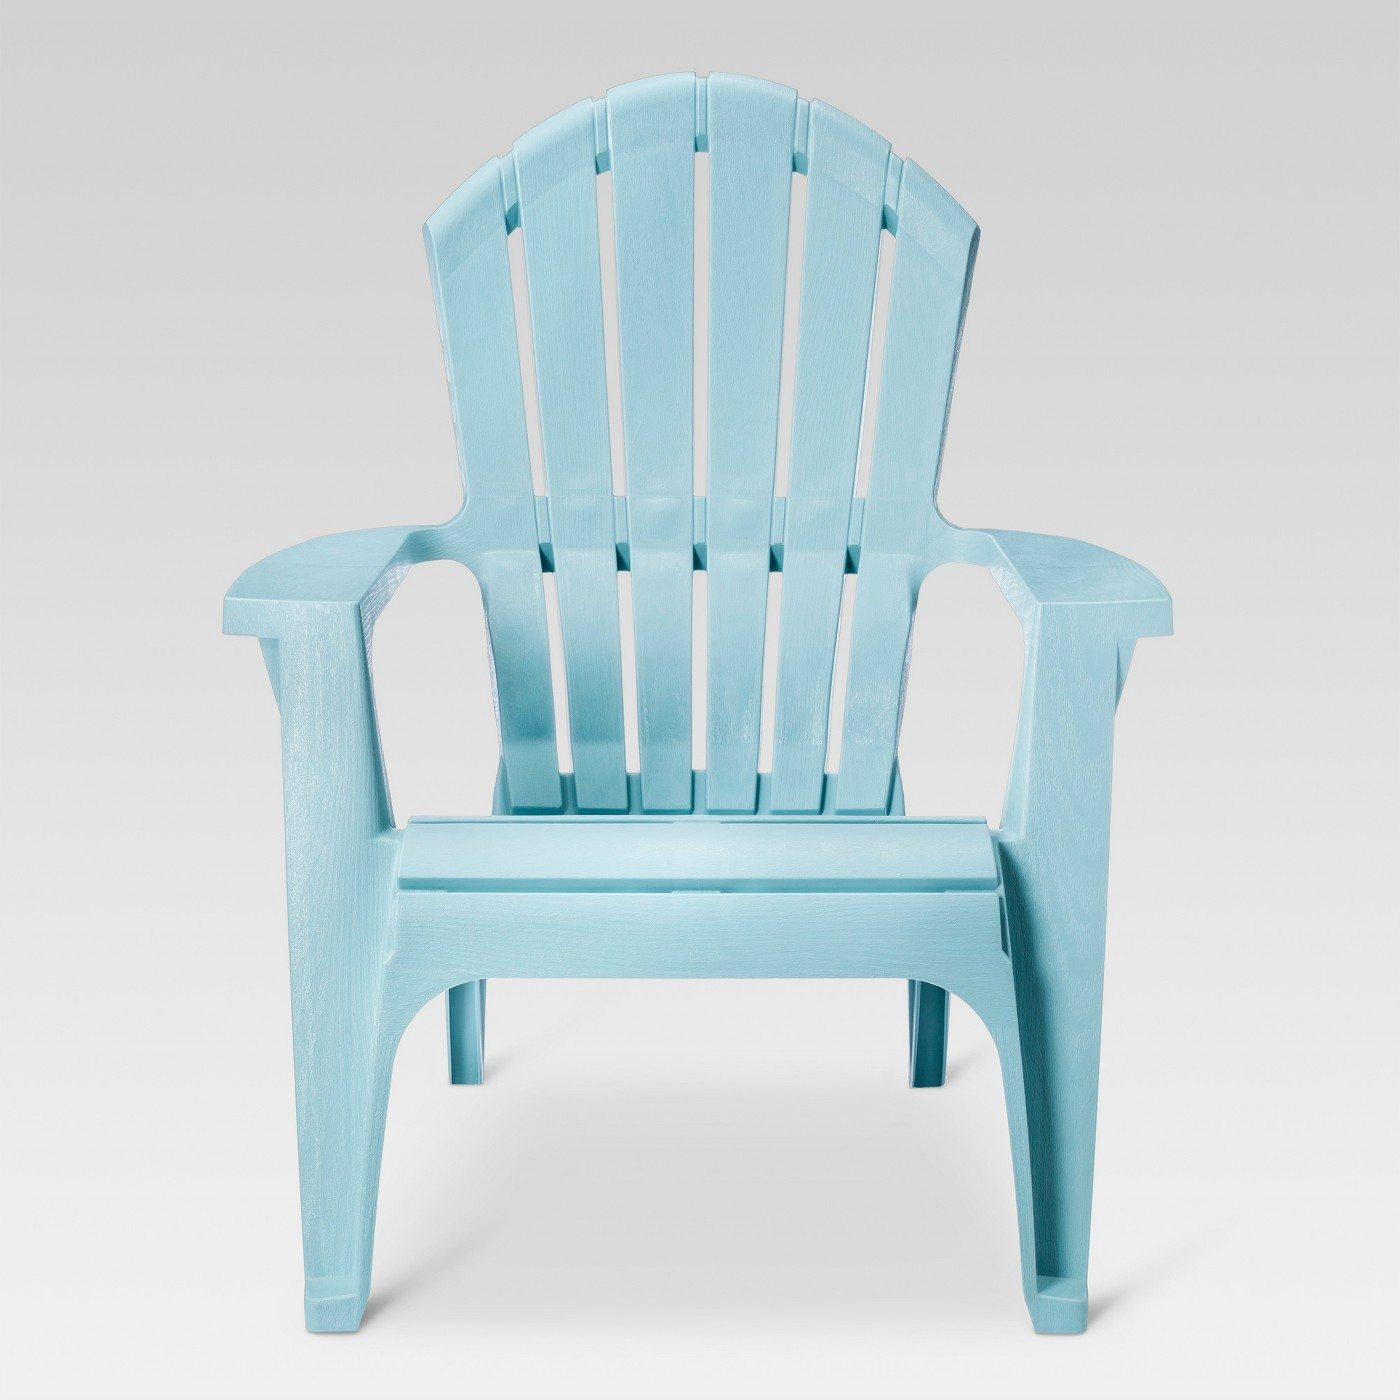 Adams Resin Adirondack Chairs Target Has A Serious Discount On Patio Furniture Simplemost